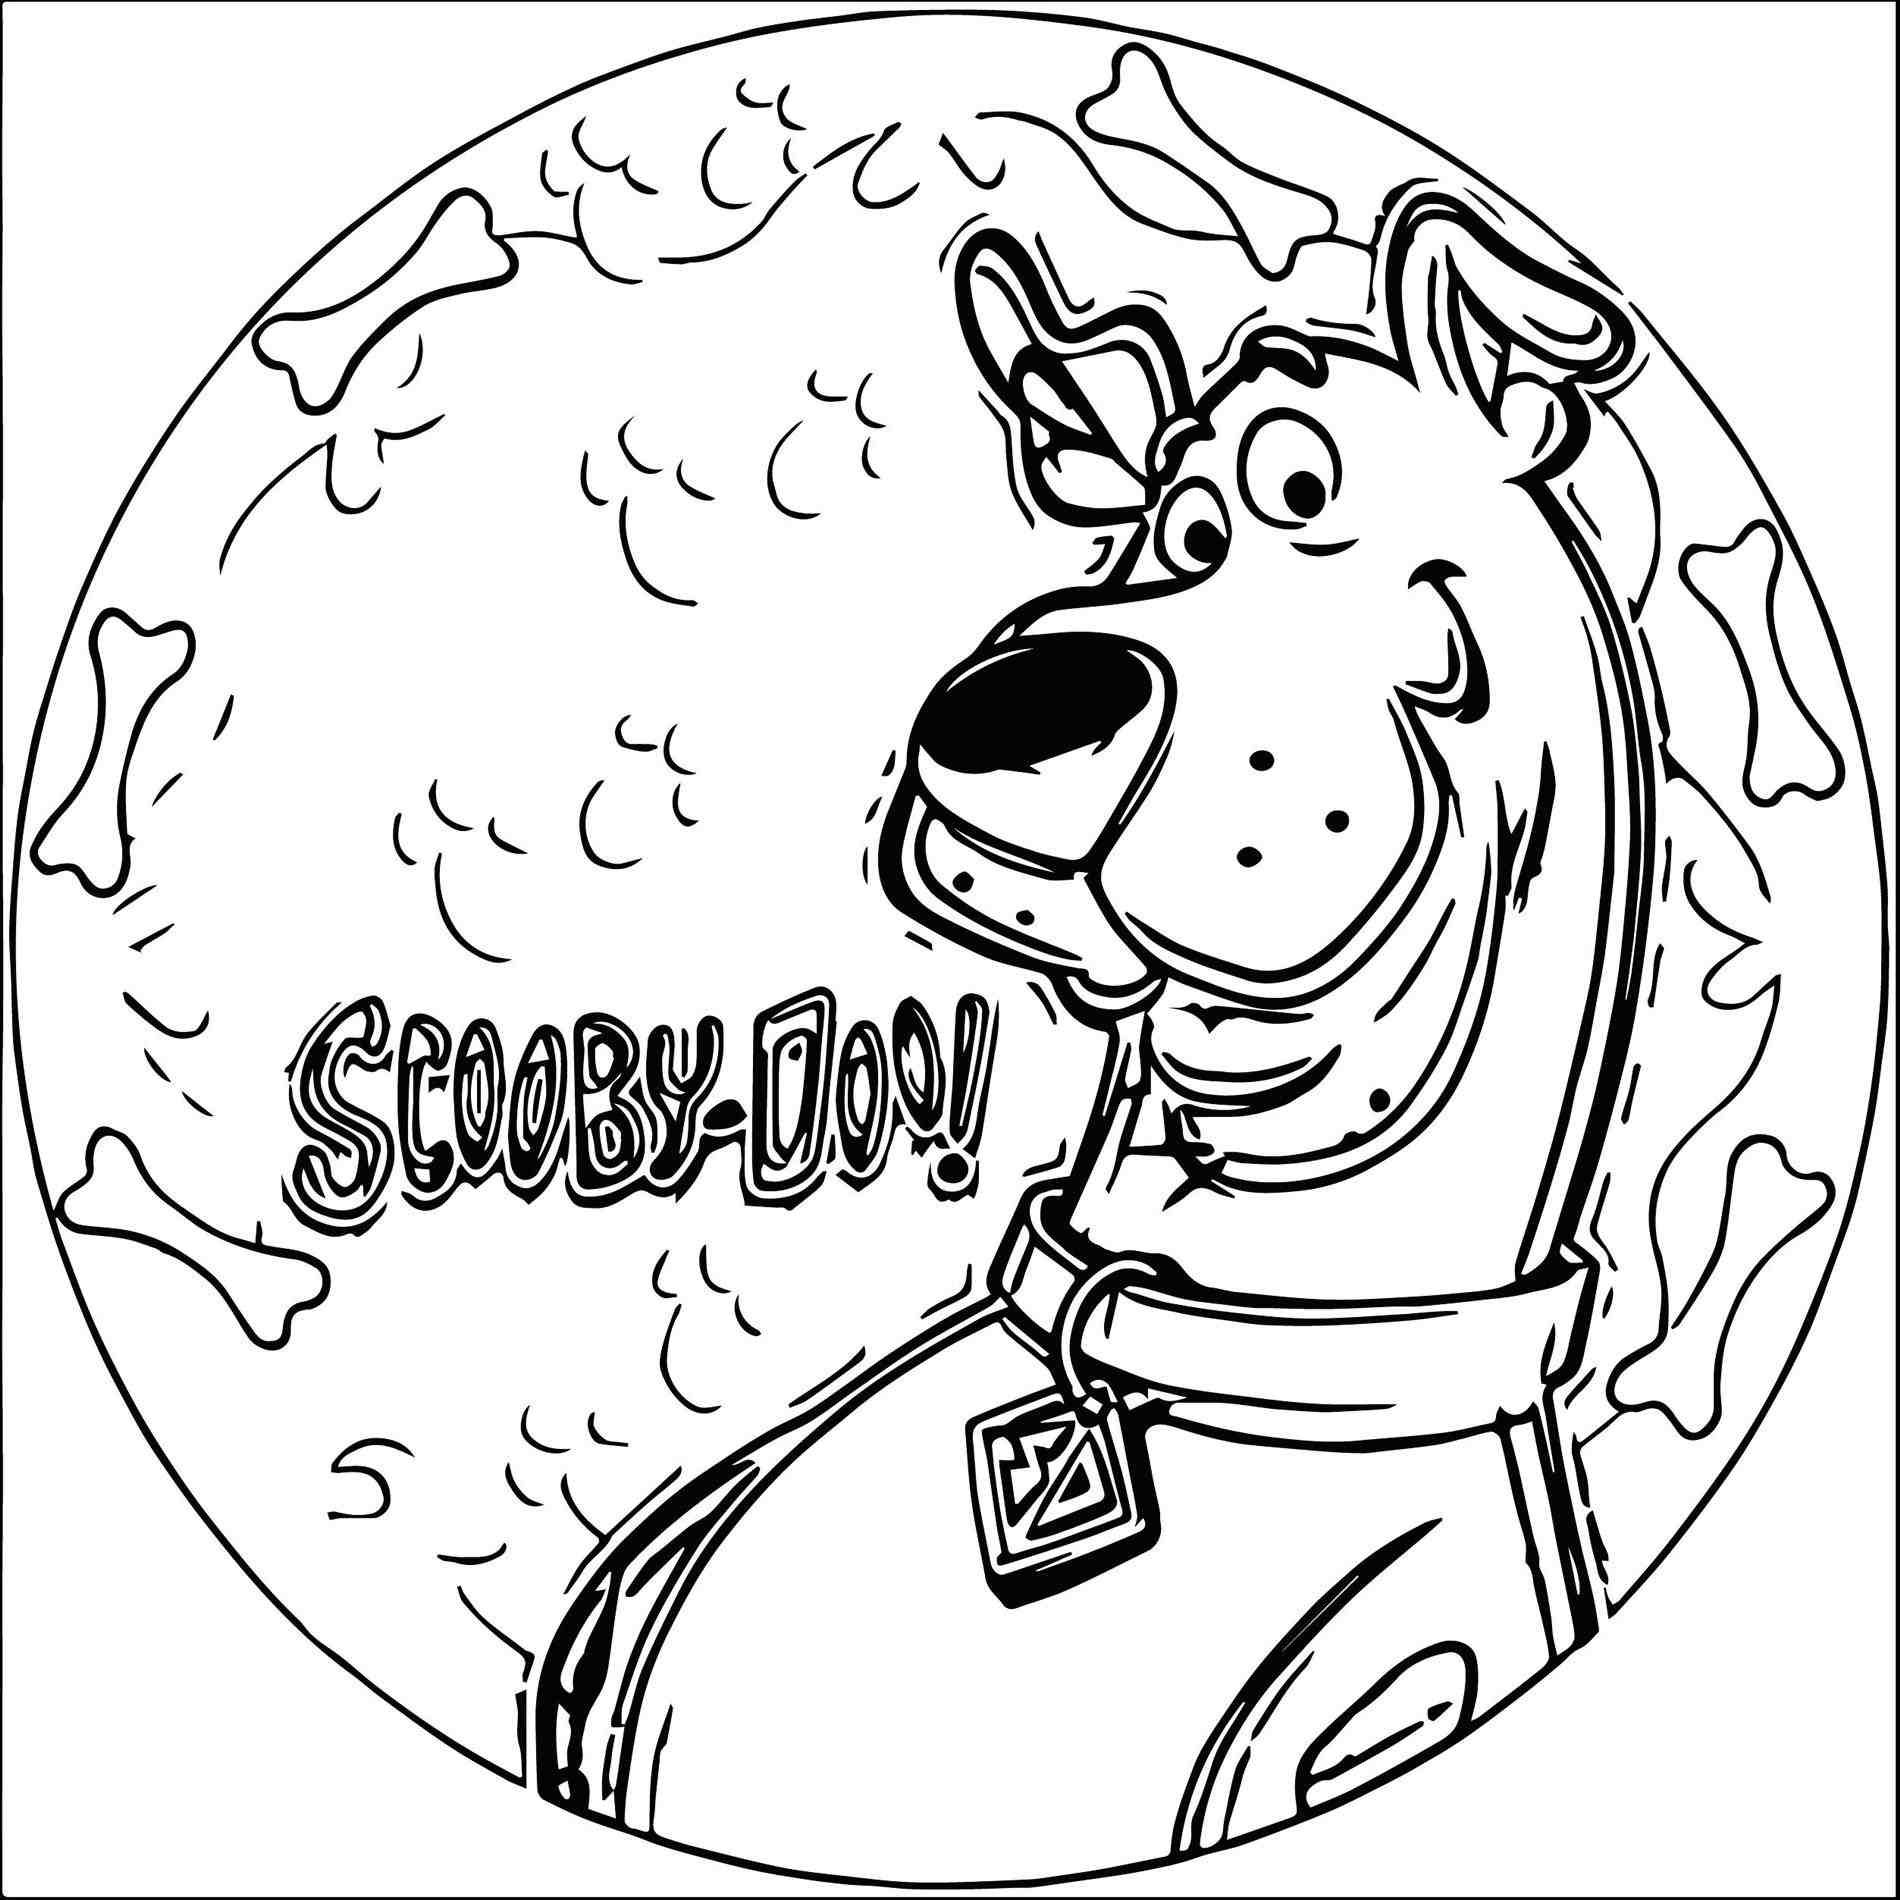 New Post scooby doo christmas coloring pages | Decors Ideas ...